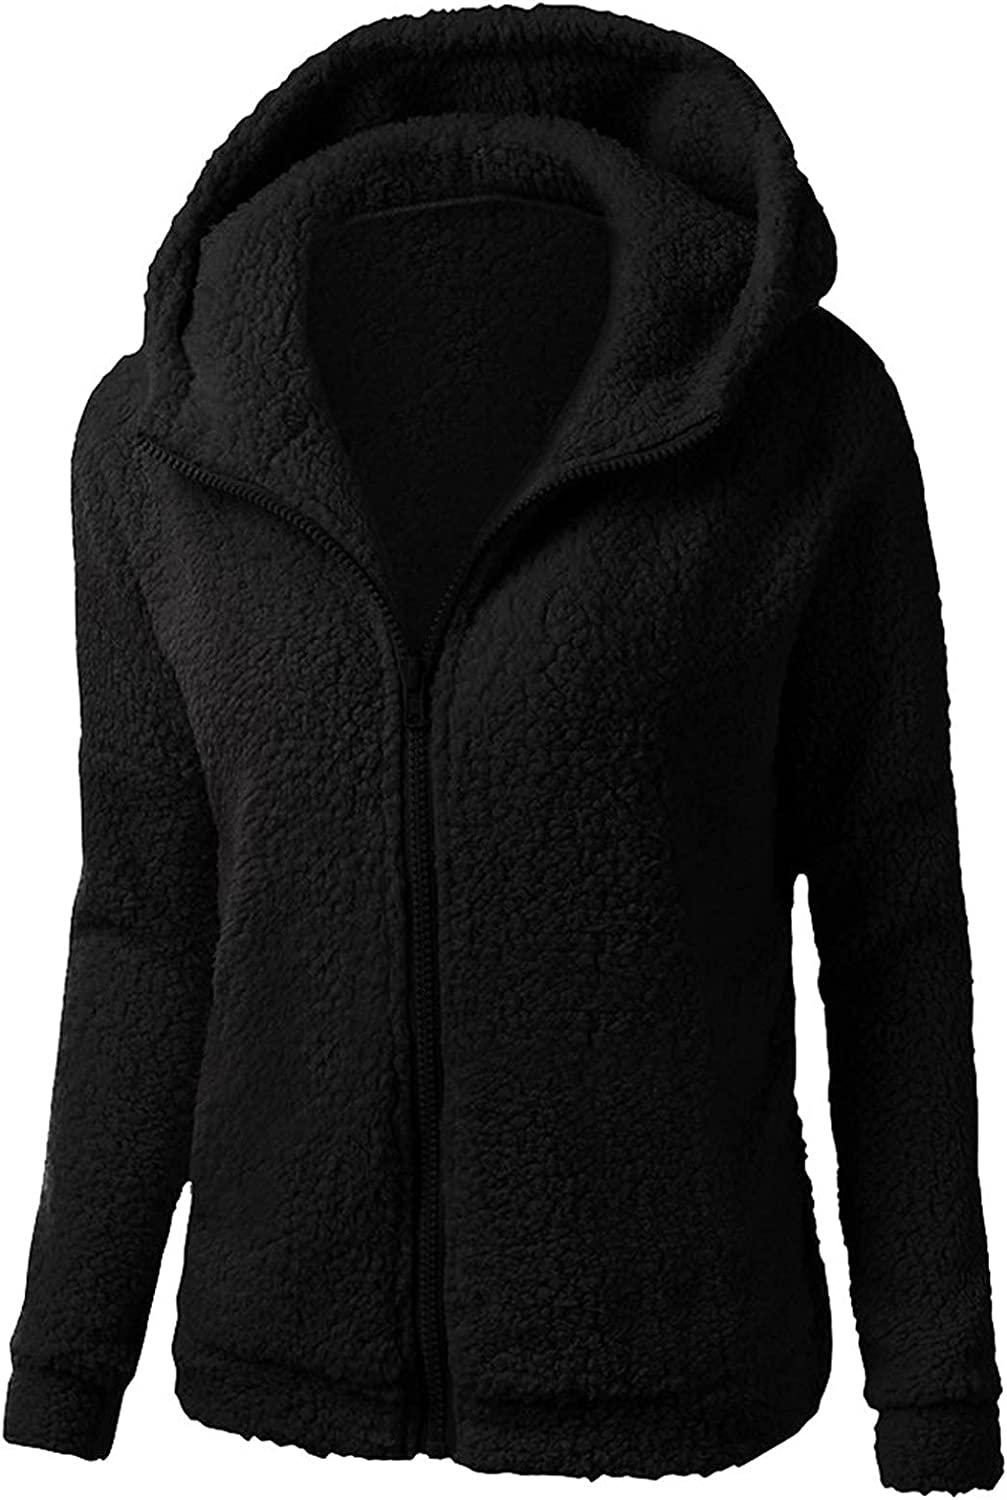 SZITOP Women's Hooded Winter Warm Wool Zipper Solid Color Long Sleeve Casual Cotton Chunky Tops Sweater Pullover Coat Outwear